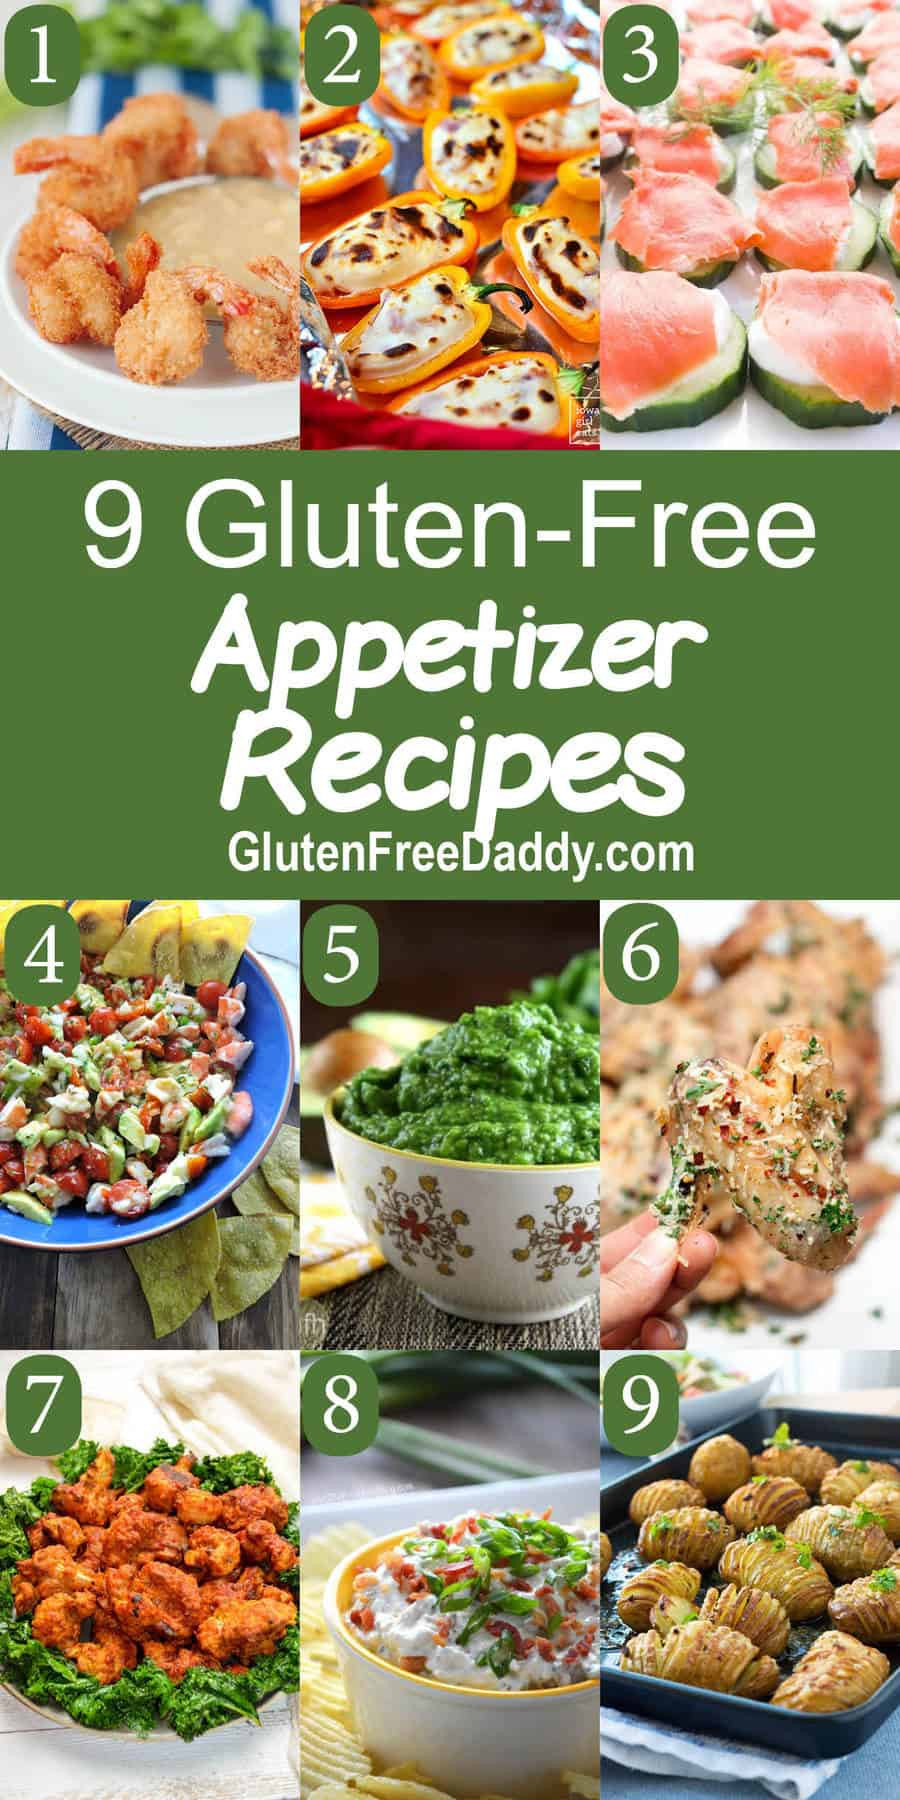 Gluten Free Appetizer Recipes  9 of the Best Ever Gluten Free Appetizers Recipes